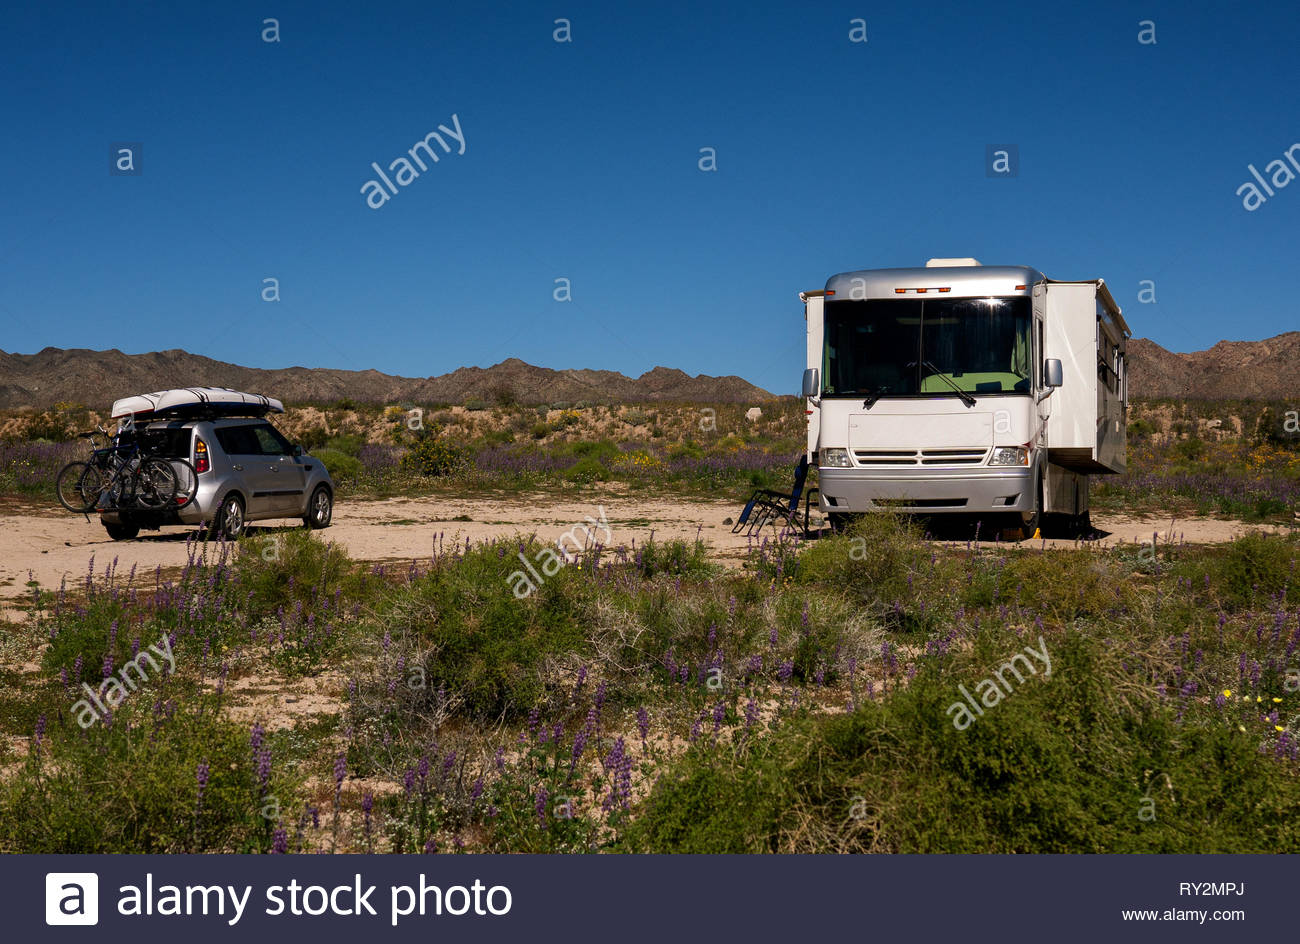 Camping In The Joshua Tree National Park Stock Photo